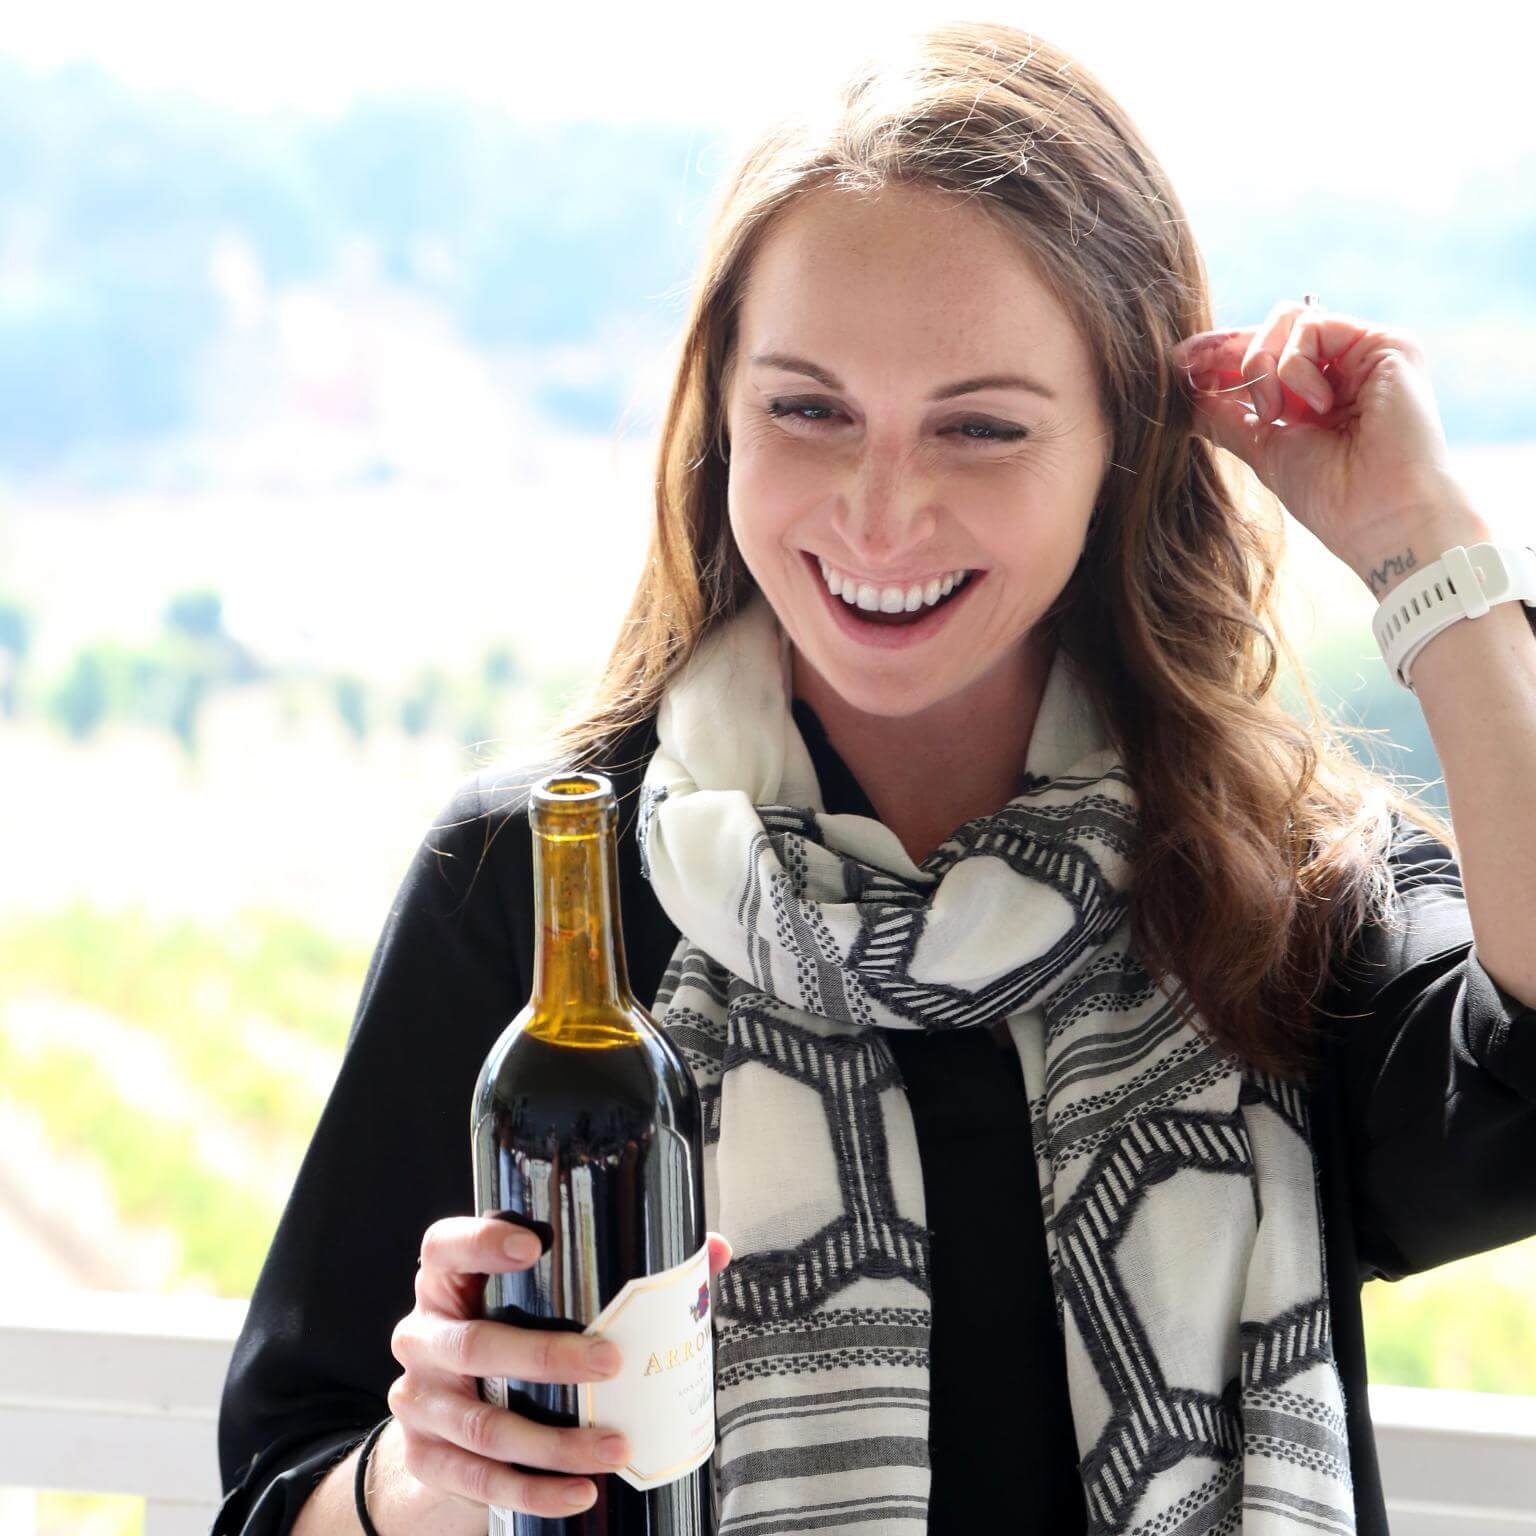 Kristina with a bottle of Arrowood wine